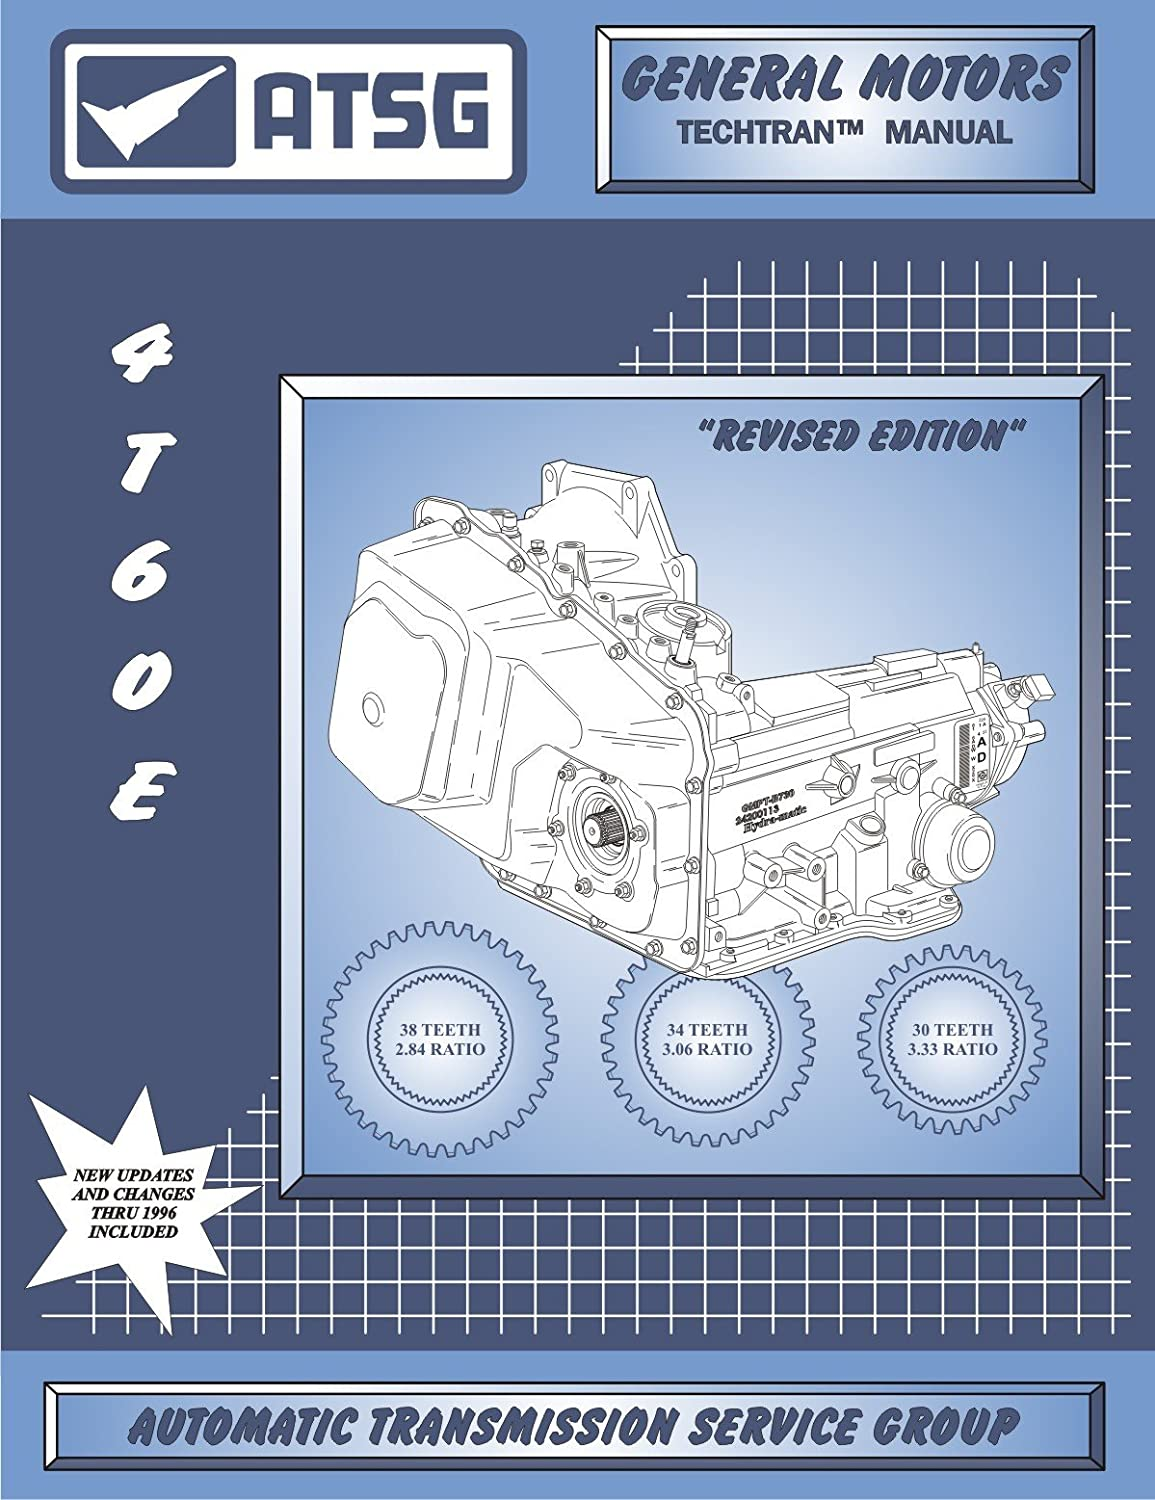 Gm 4t60e Diagram | Wiring Diagram